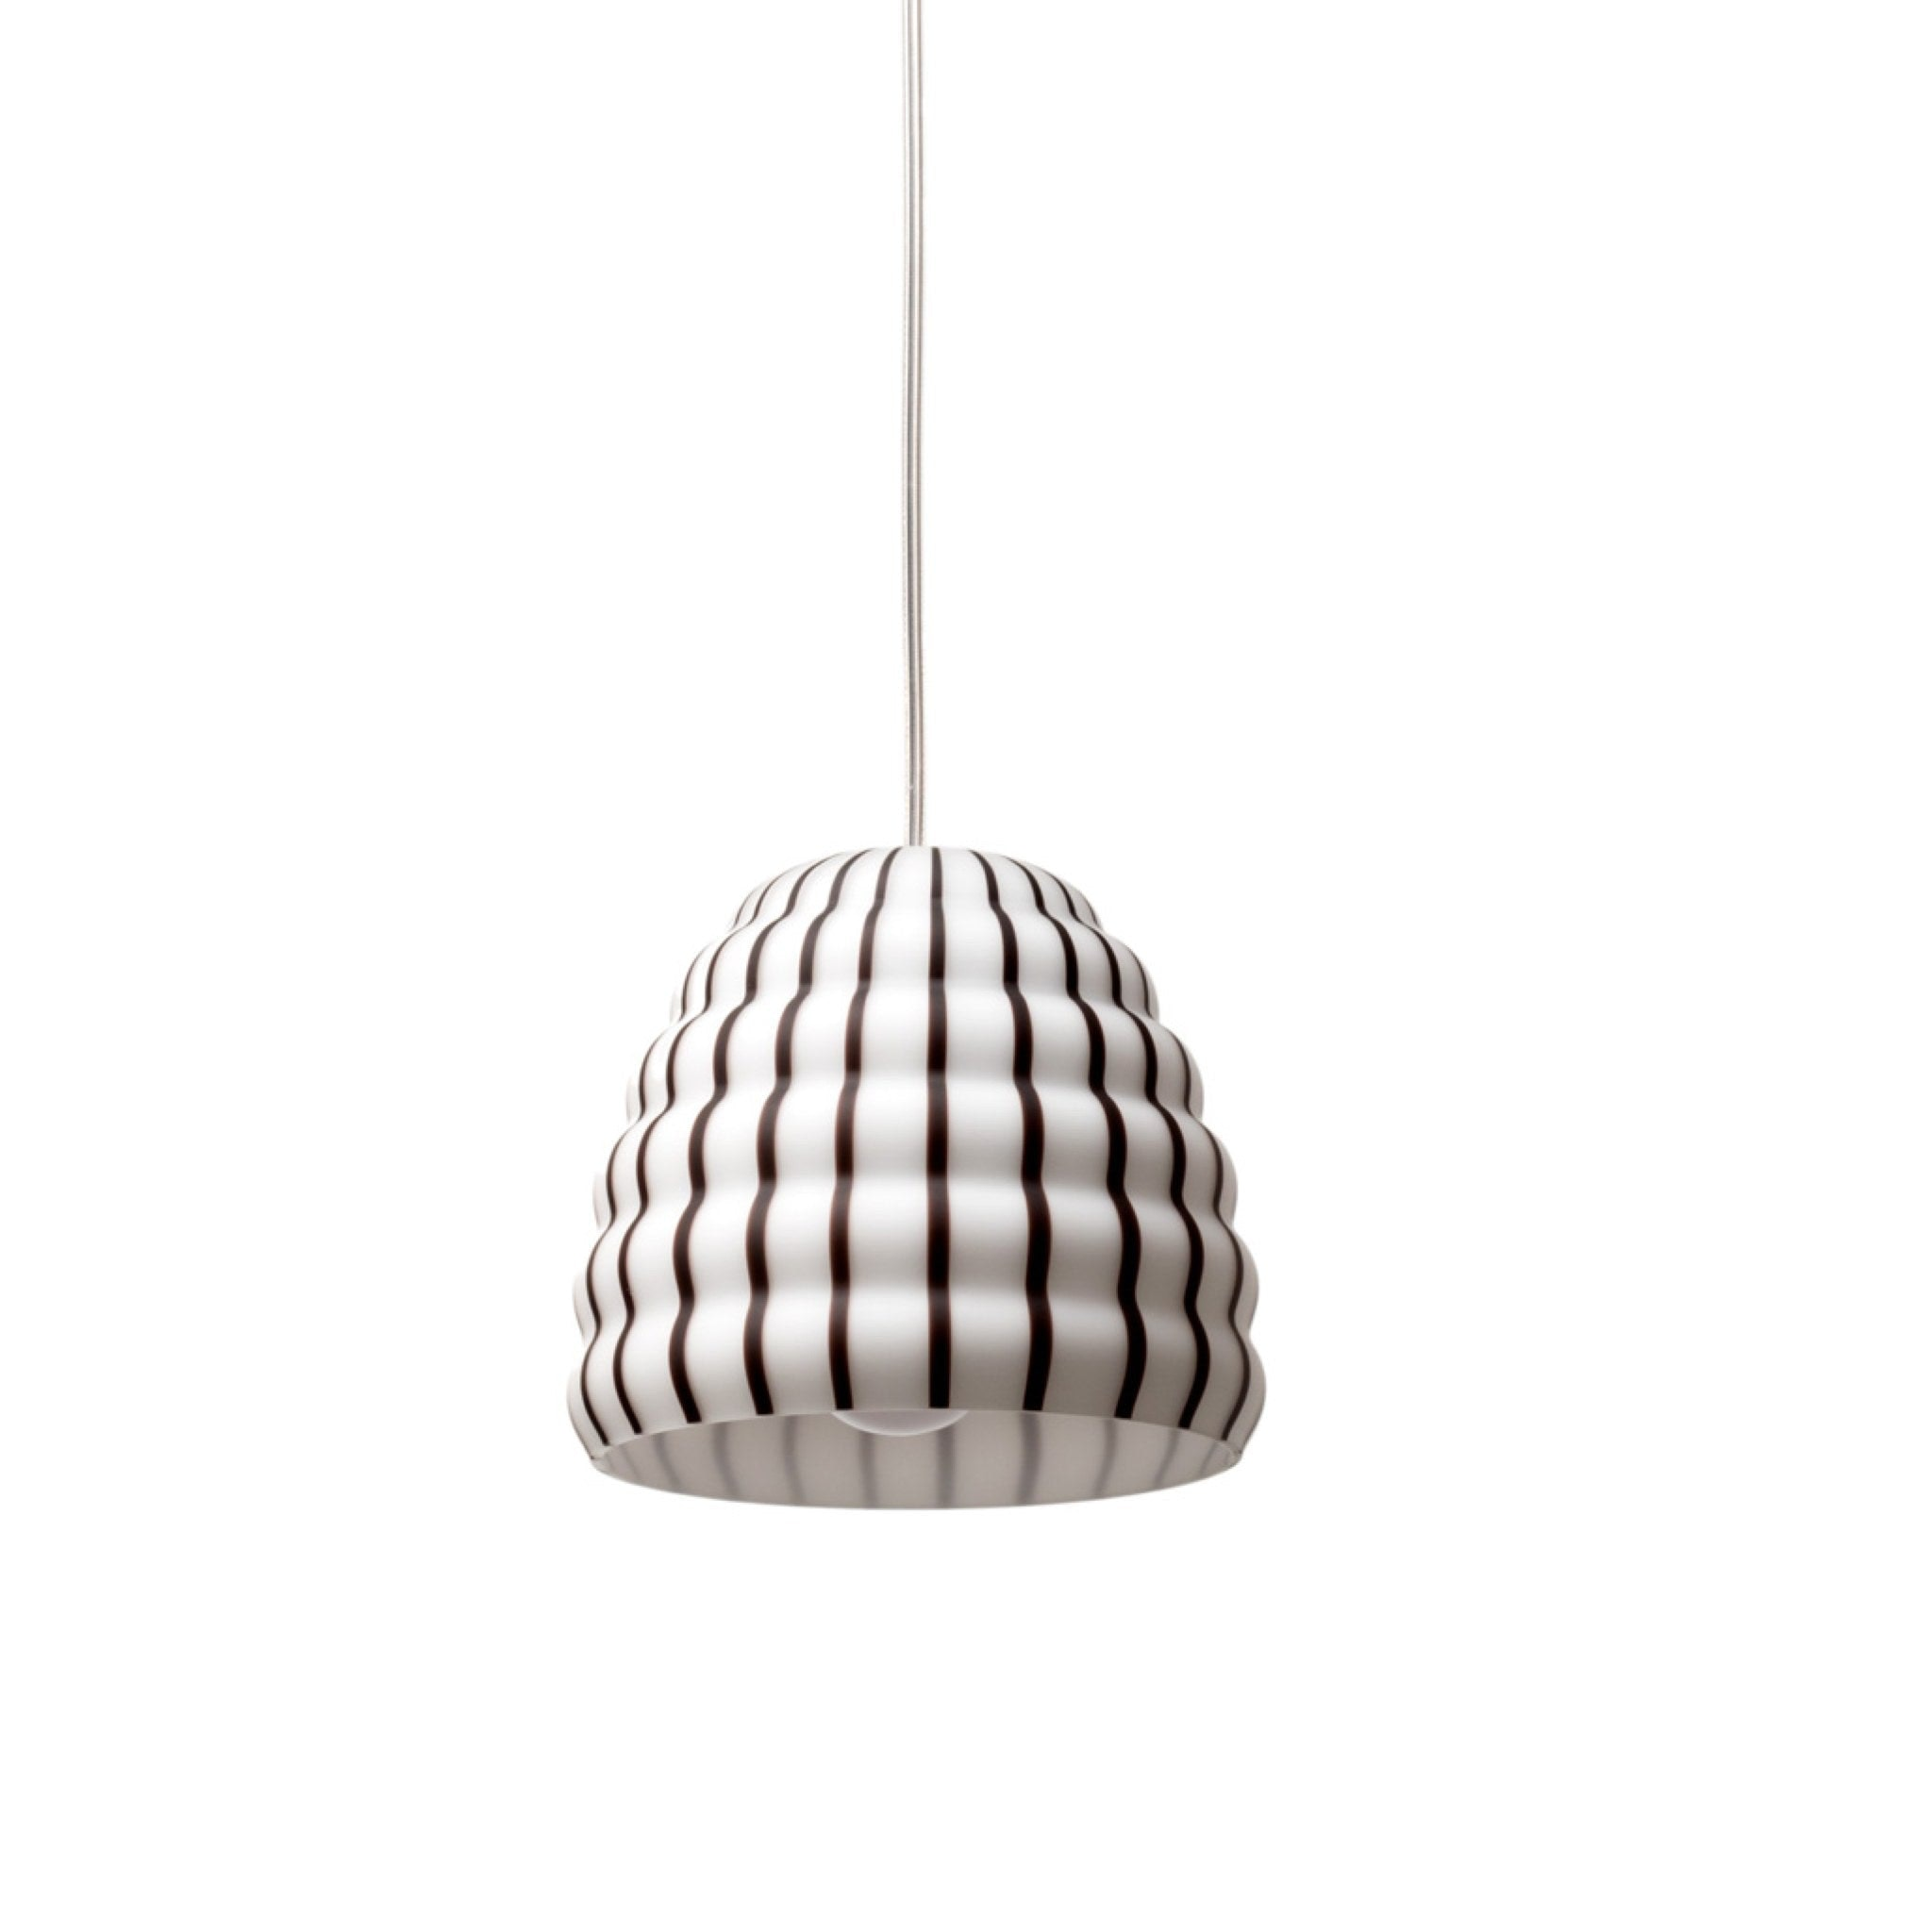 Filigrana Light by Established & Sons